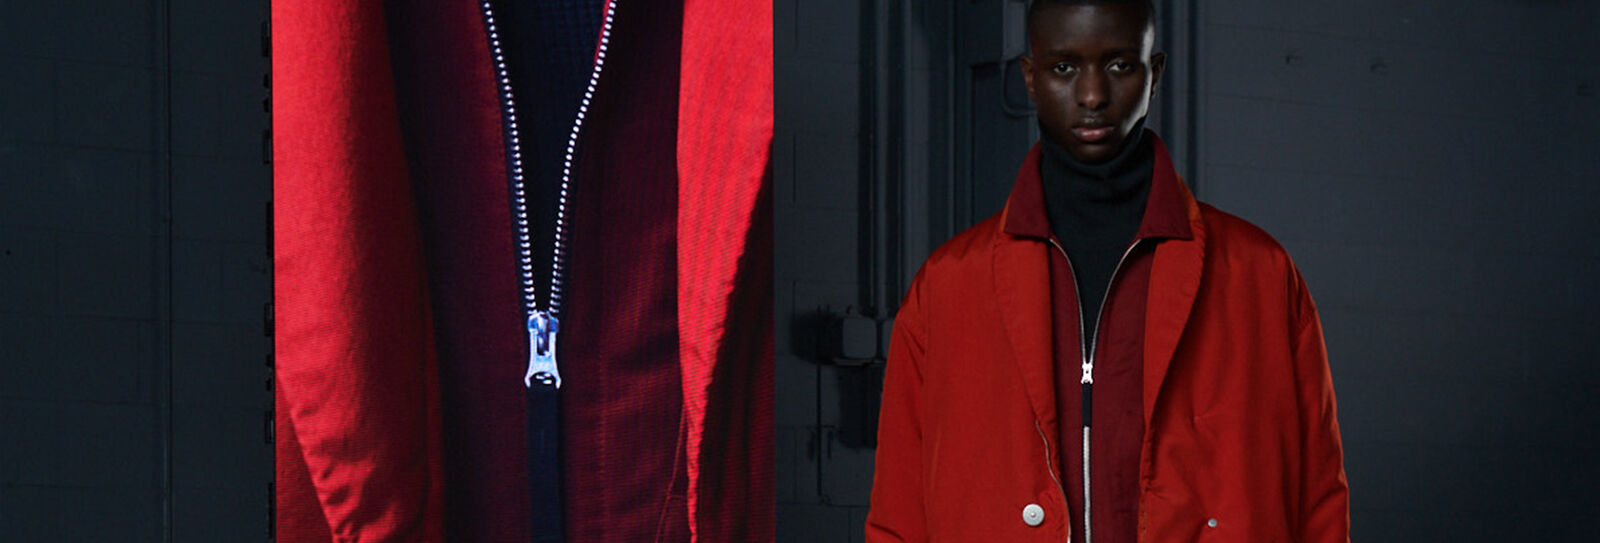 Model wearing a dark red jacket with high collar and a red overcoat beside an extreme close-up of the jacket zipper.